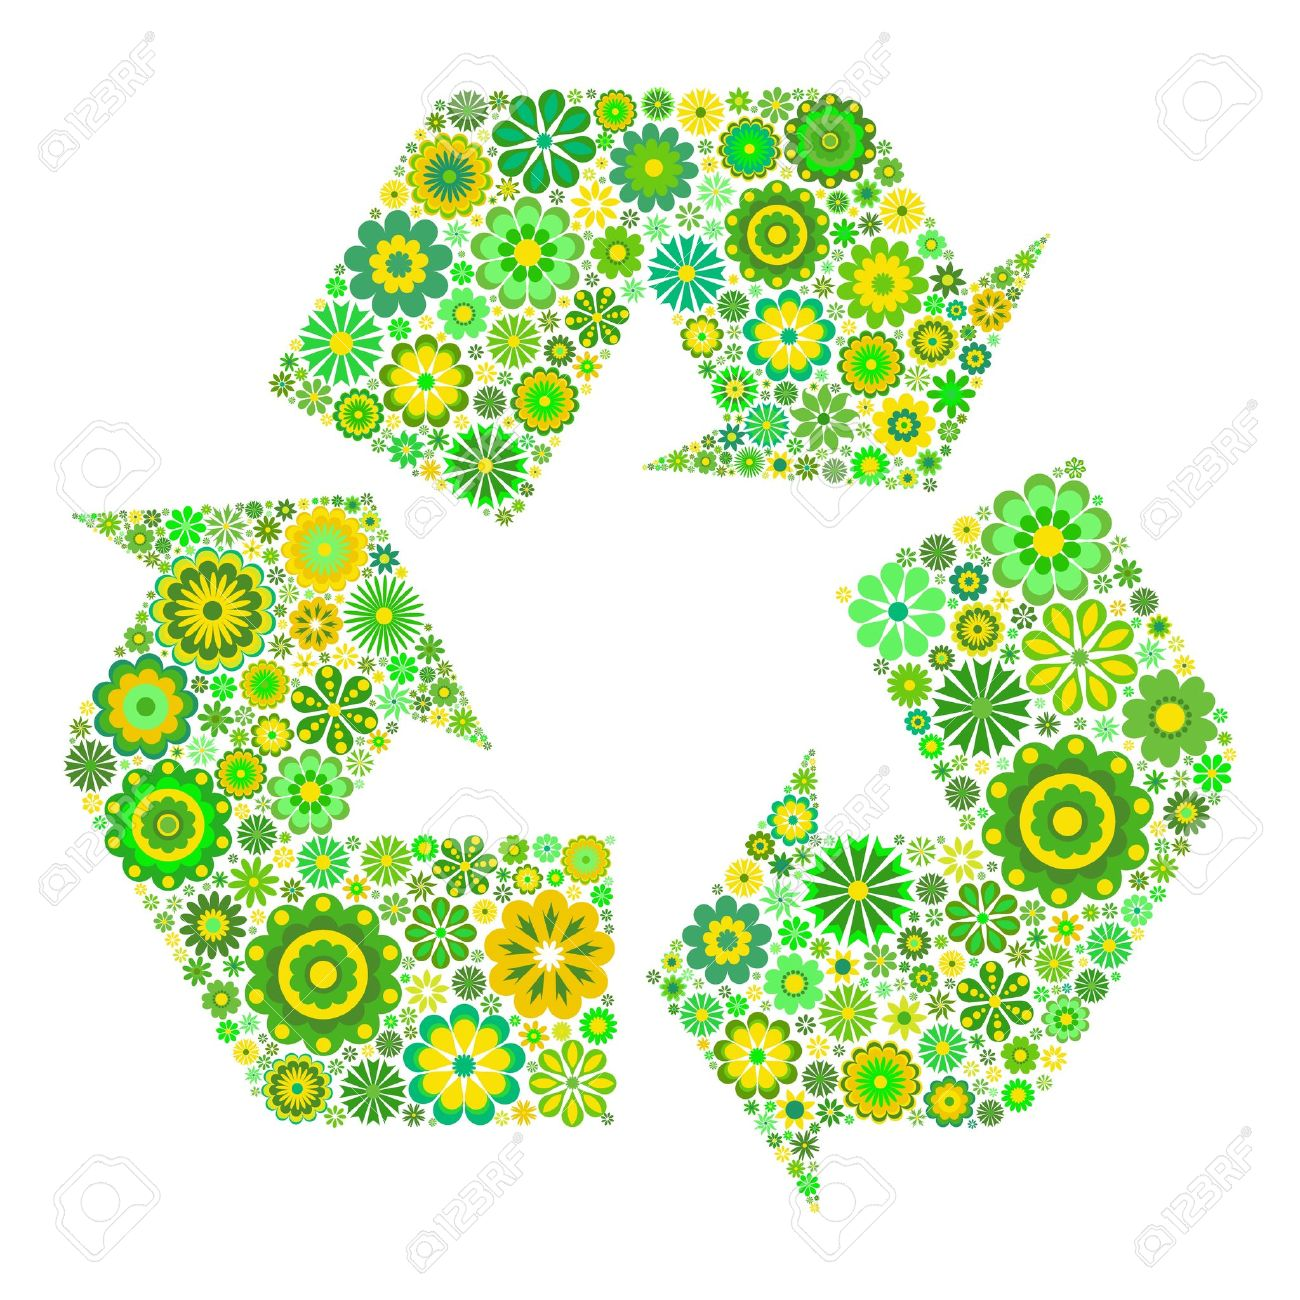 Flowery recycling symbol isolated on white background royalty free flowery recycling symbol isolated on white background stock vector 13172254 biocorpaavc Gallery